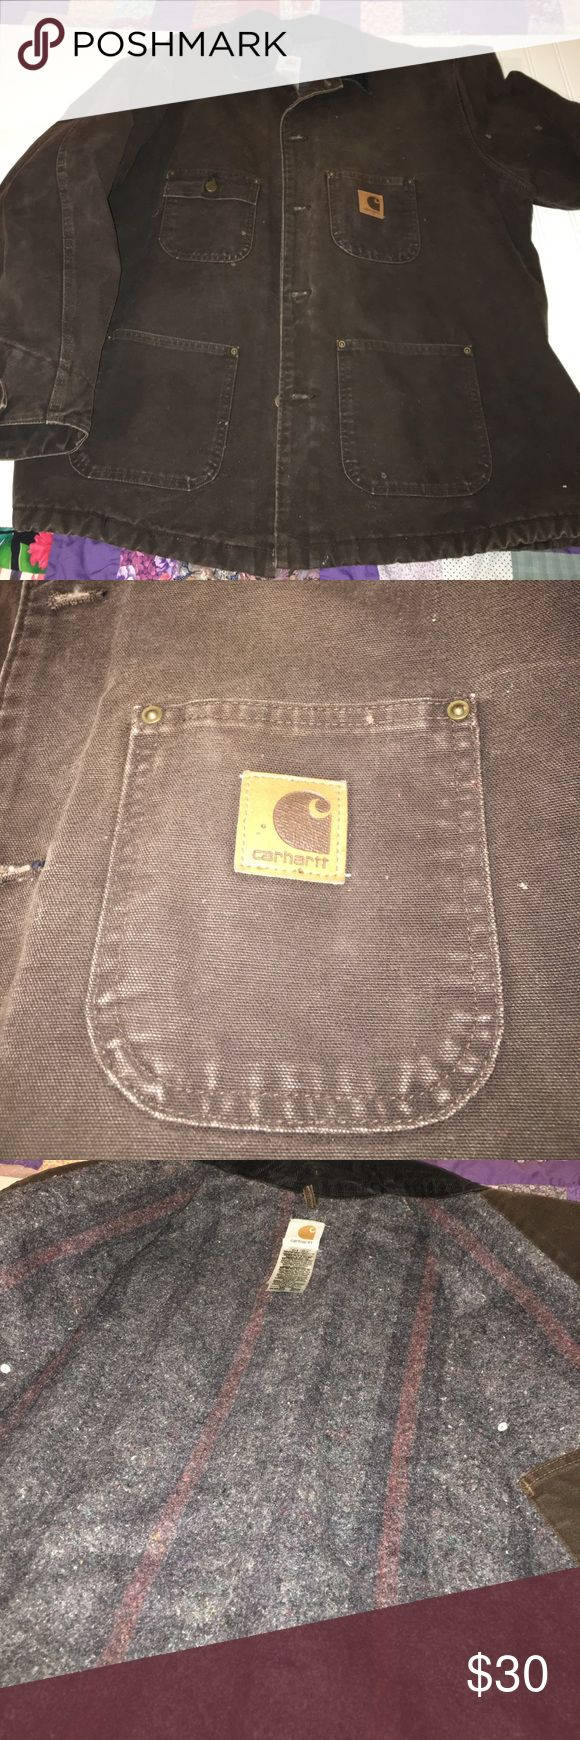 Carhartt Duck Chore Lined Jacket Blanket Lined-Pre Loved Carhartt Jacket-Size 2XL Work Jacket! Has a couple of very small holes from my husband welding. Very Clean and still Has a lot of life left in it. My husband only wore it 3 times. Has been laundered. Carhartt Jackets & Coats